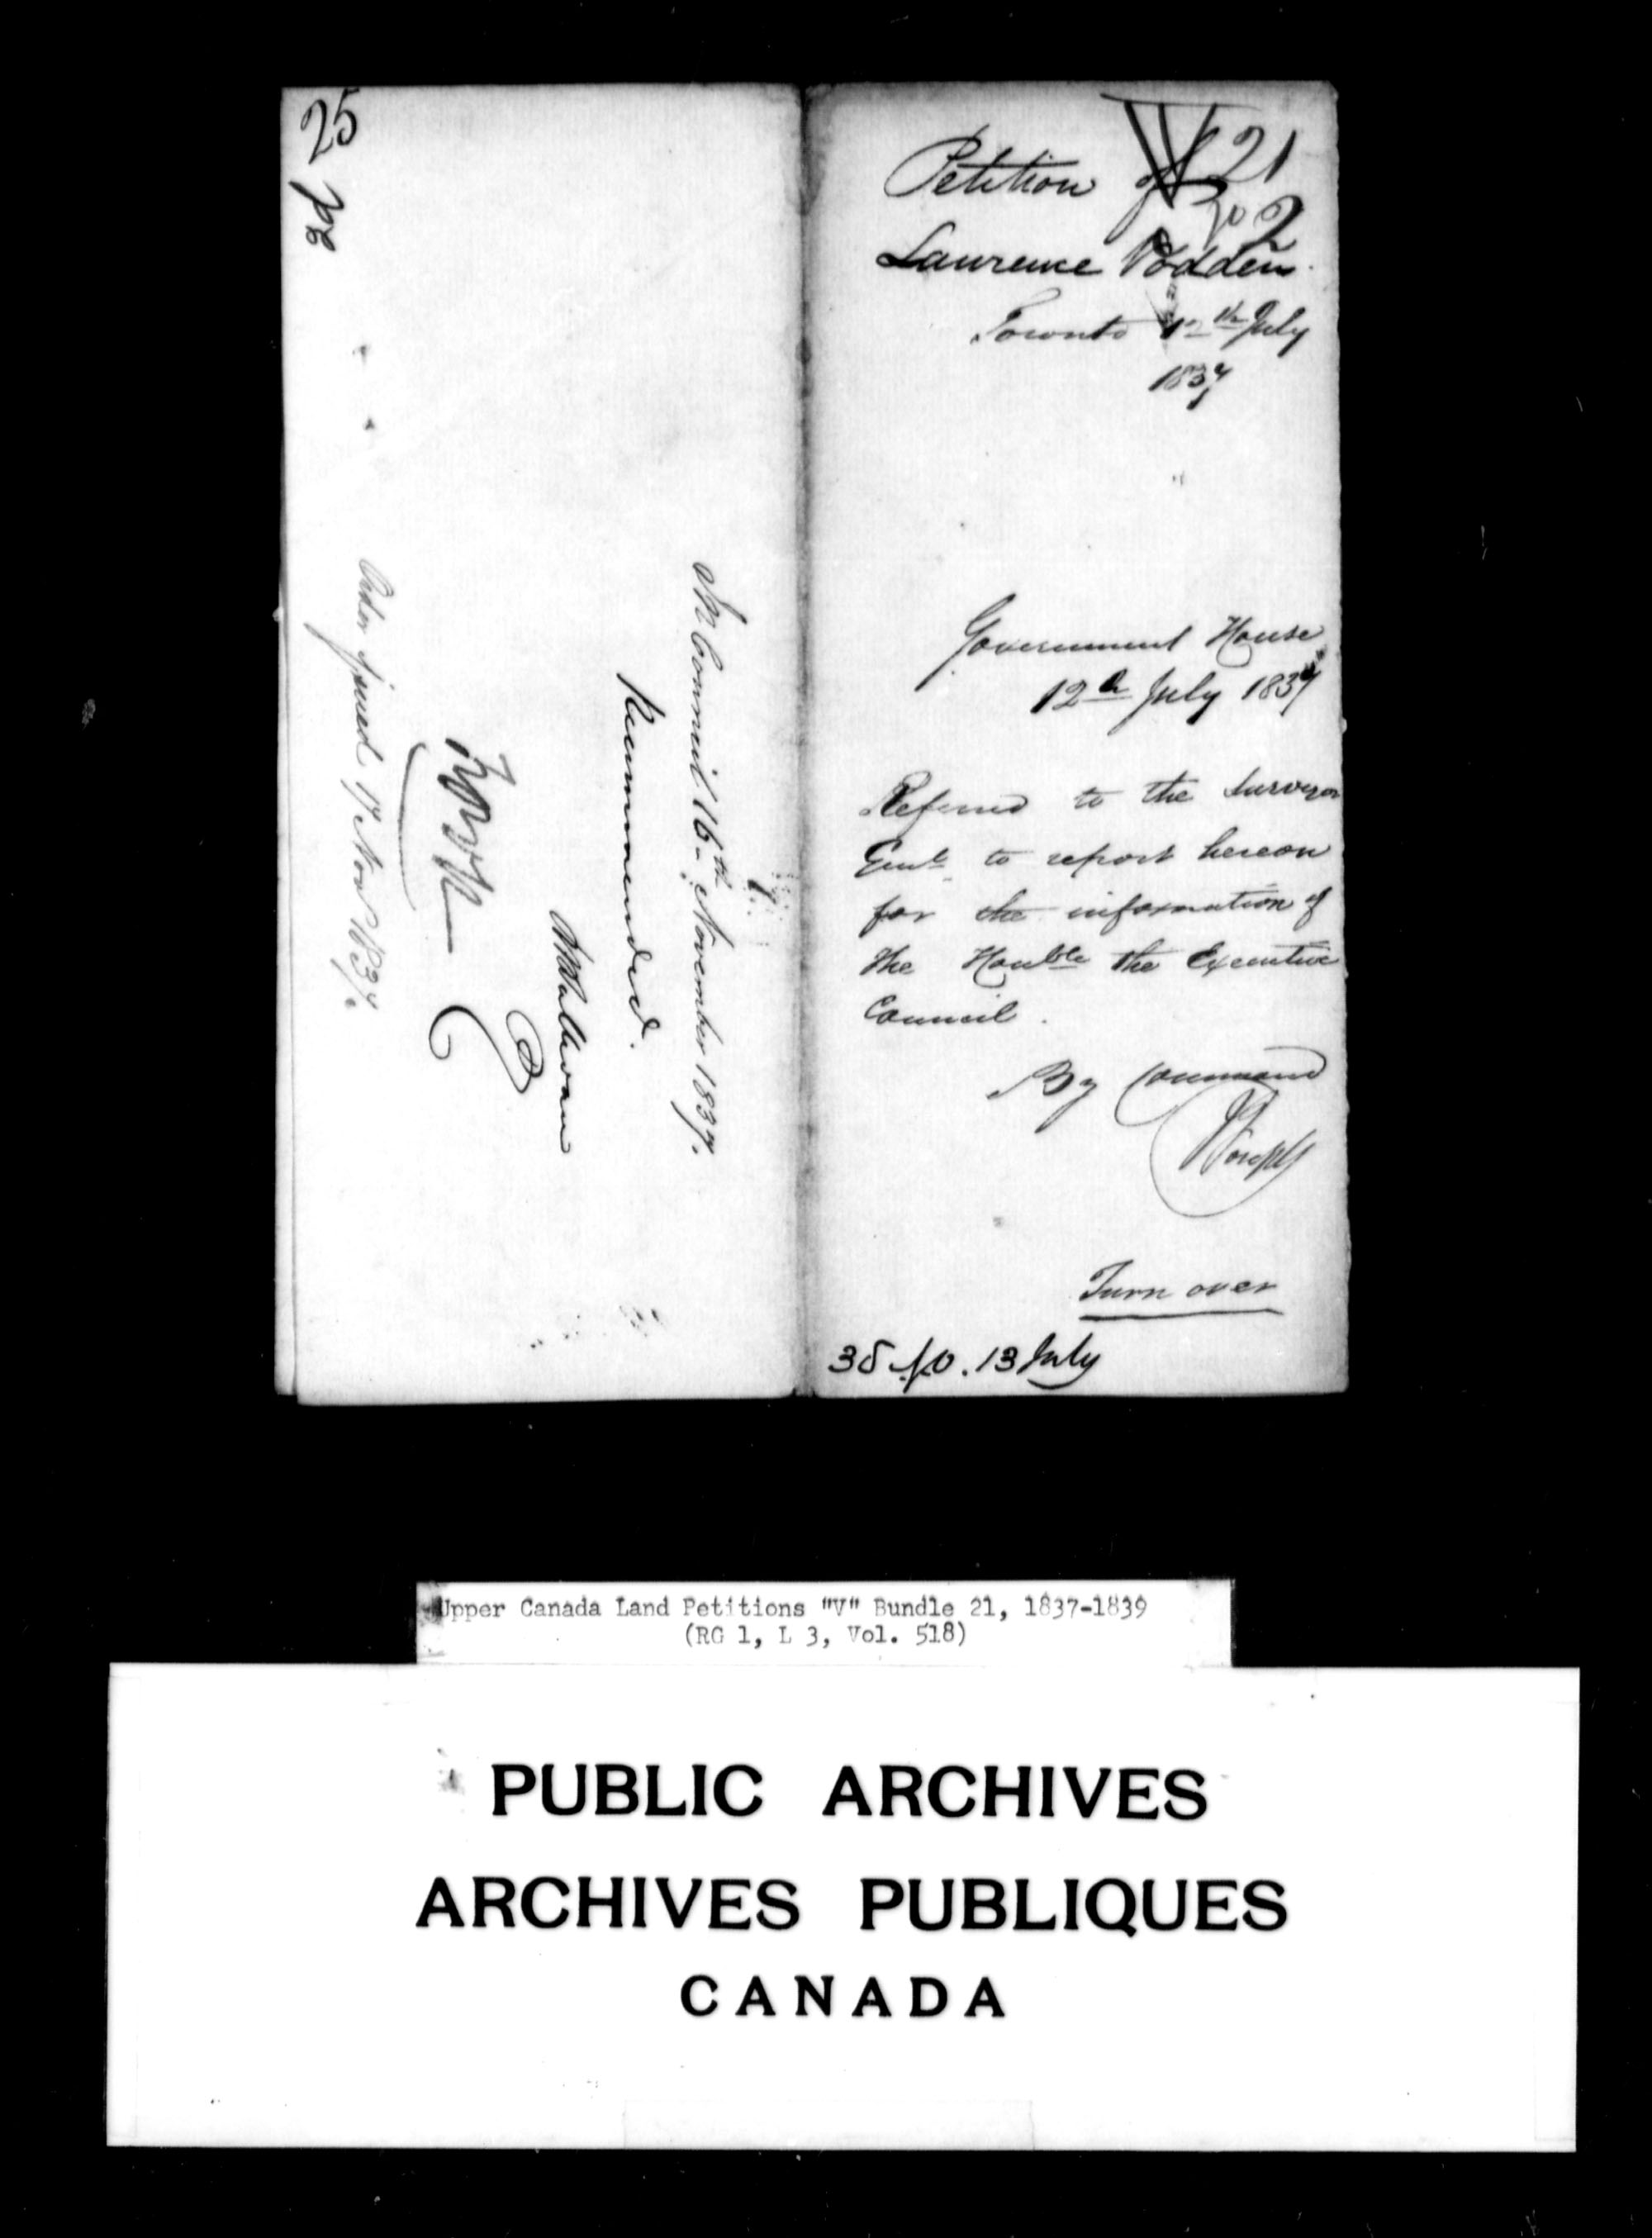 Title: Upper Canada Land Petitions (1763-1865) - Mikan Number: 205131 - Microform: c-2948